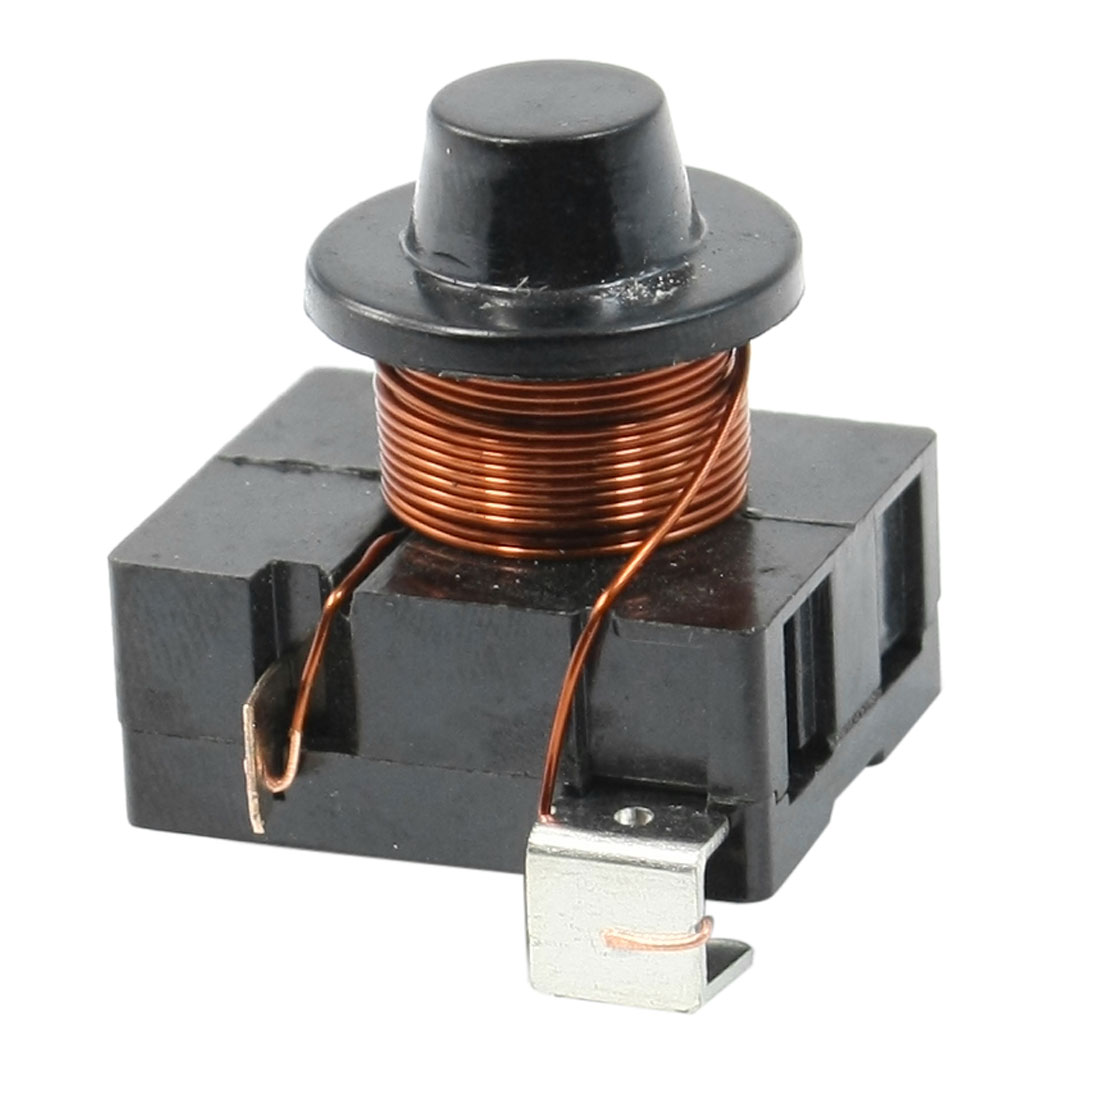 Black Plastic Housing Compressor Relay Starter for 1/6 HP Refrigerator